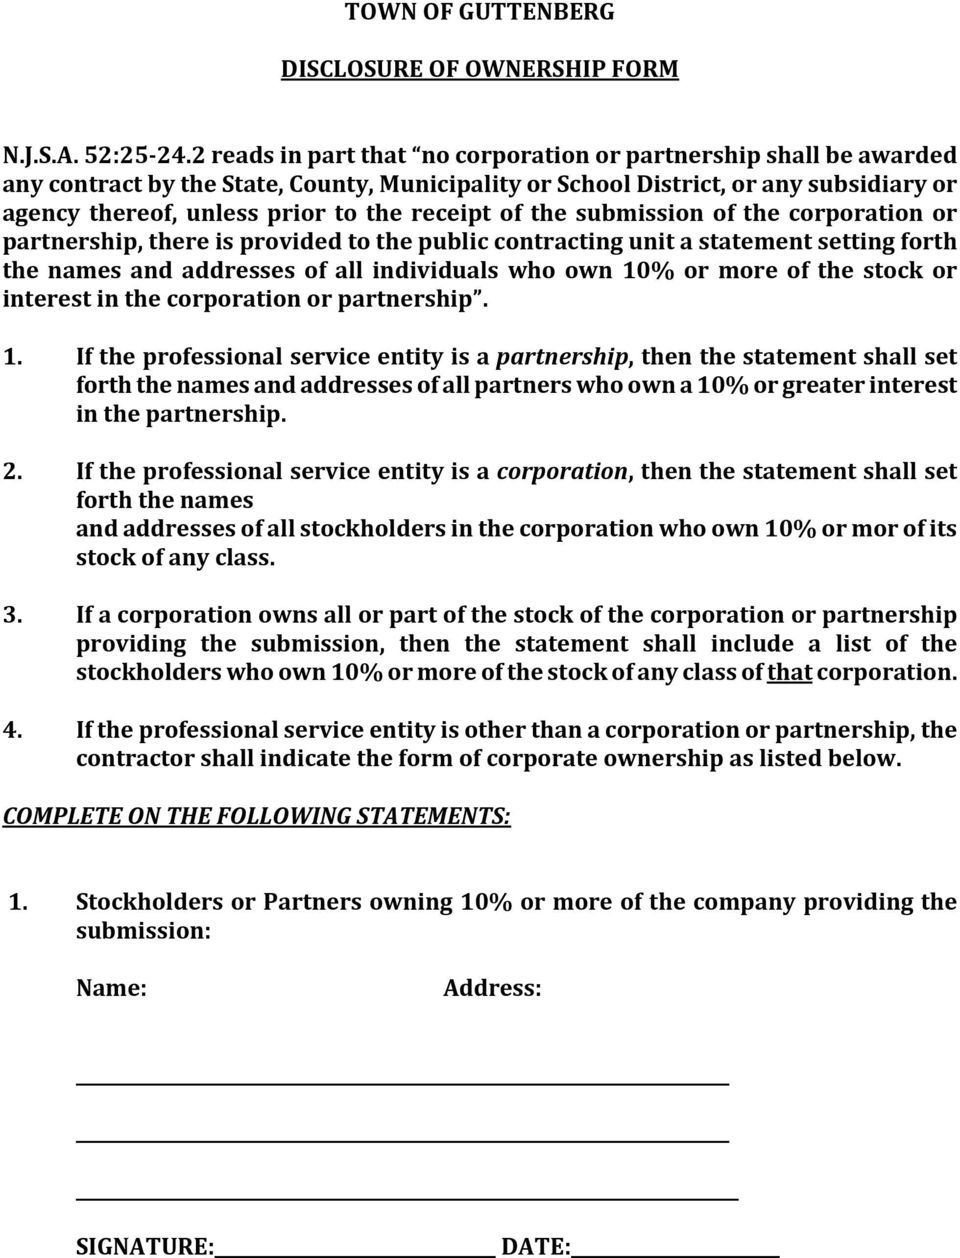 receipt of the submission of the corporation or partnership, there is provided to the public contracting unit a statement setting forth the names and addresses of all individuals who own 10% or more